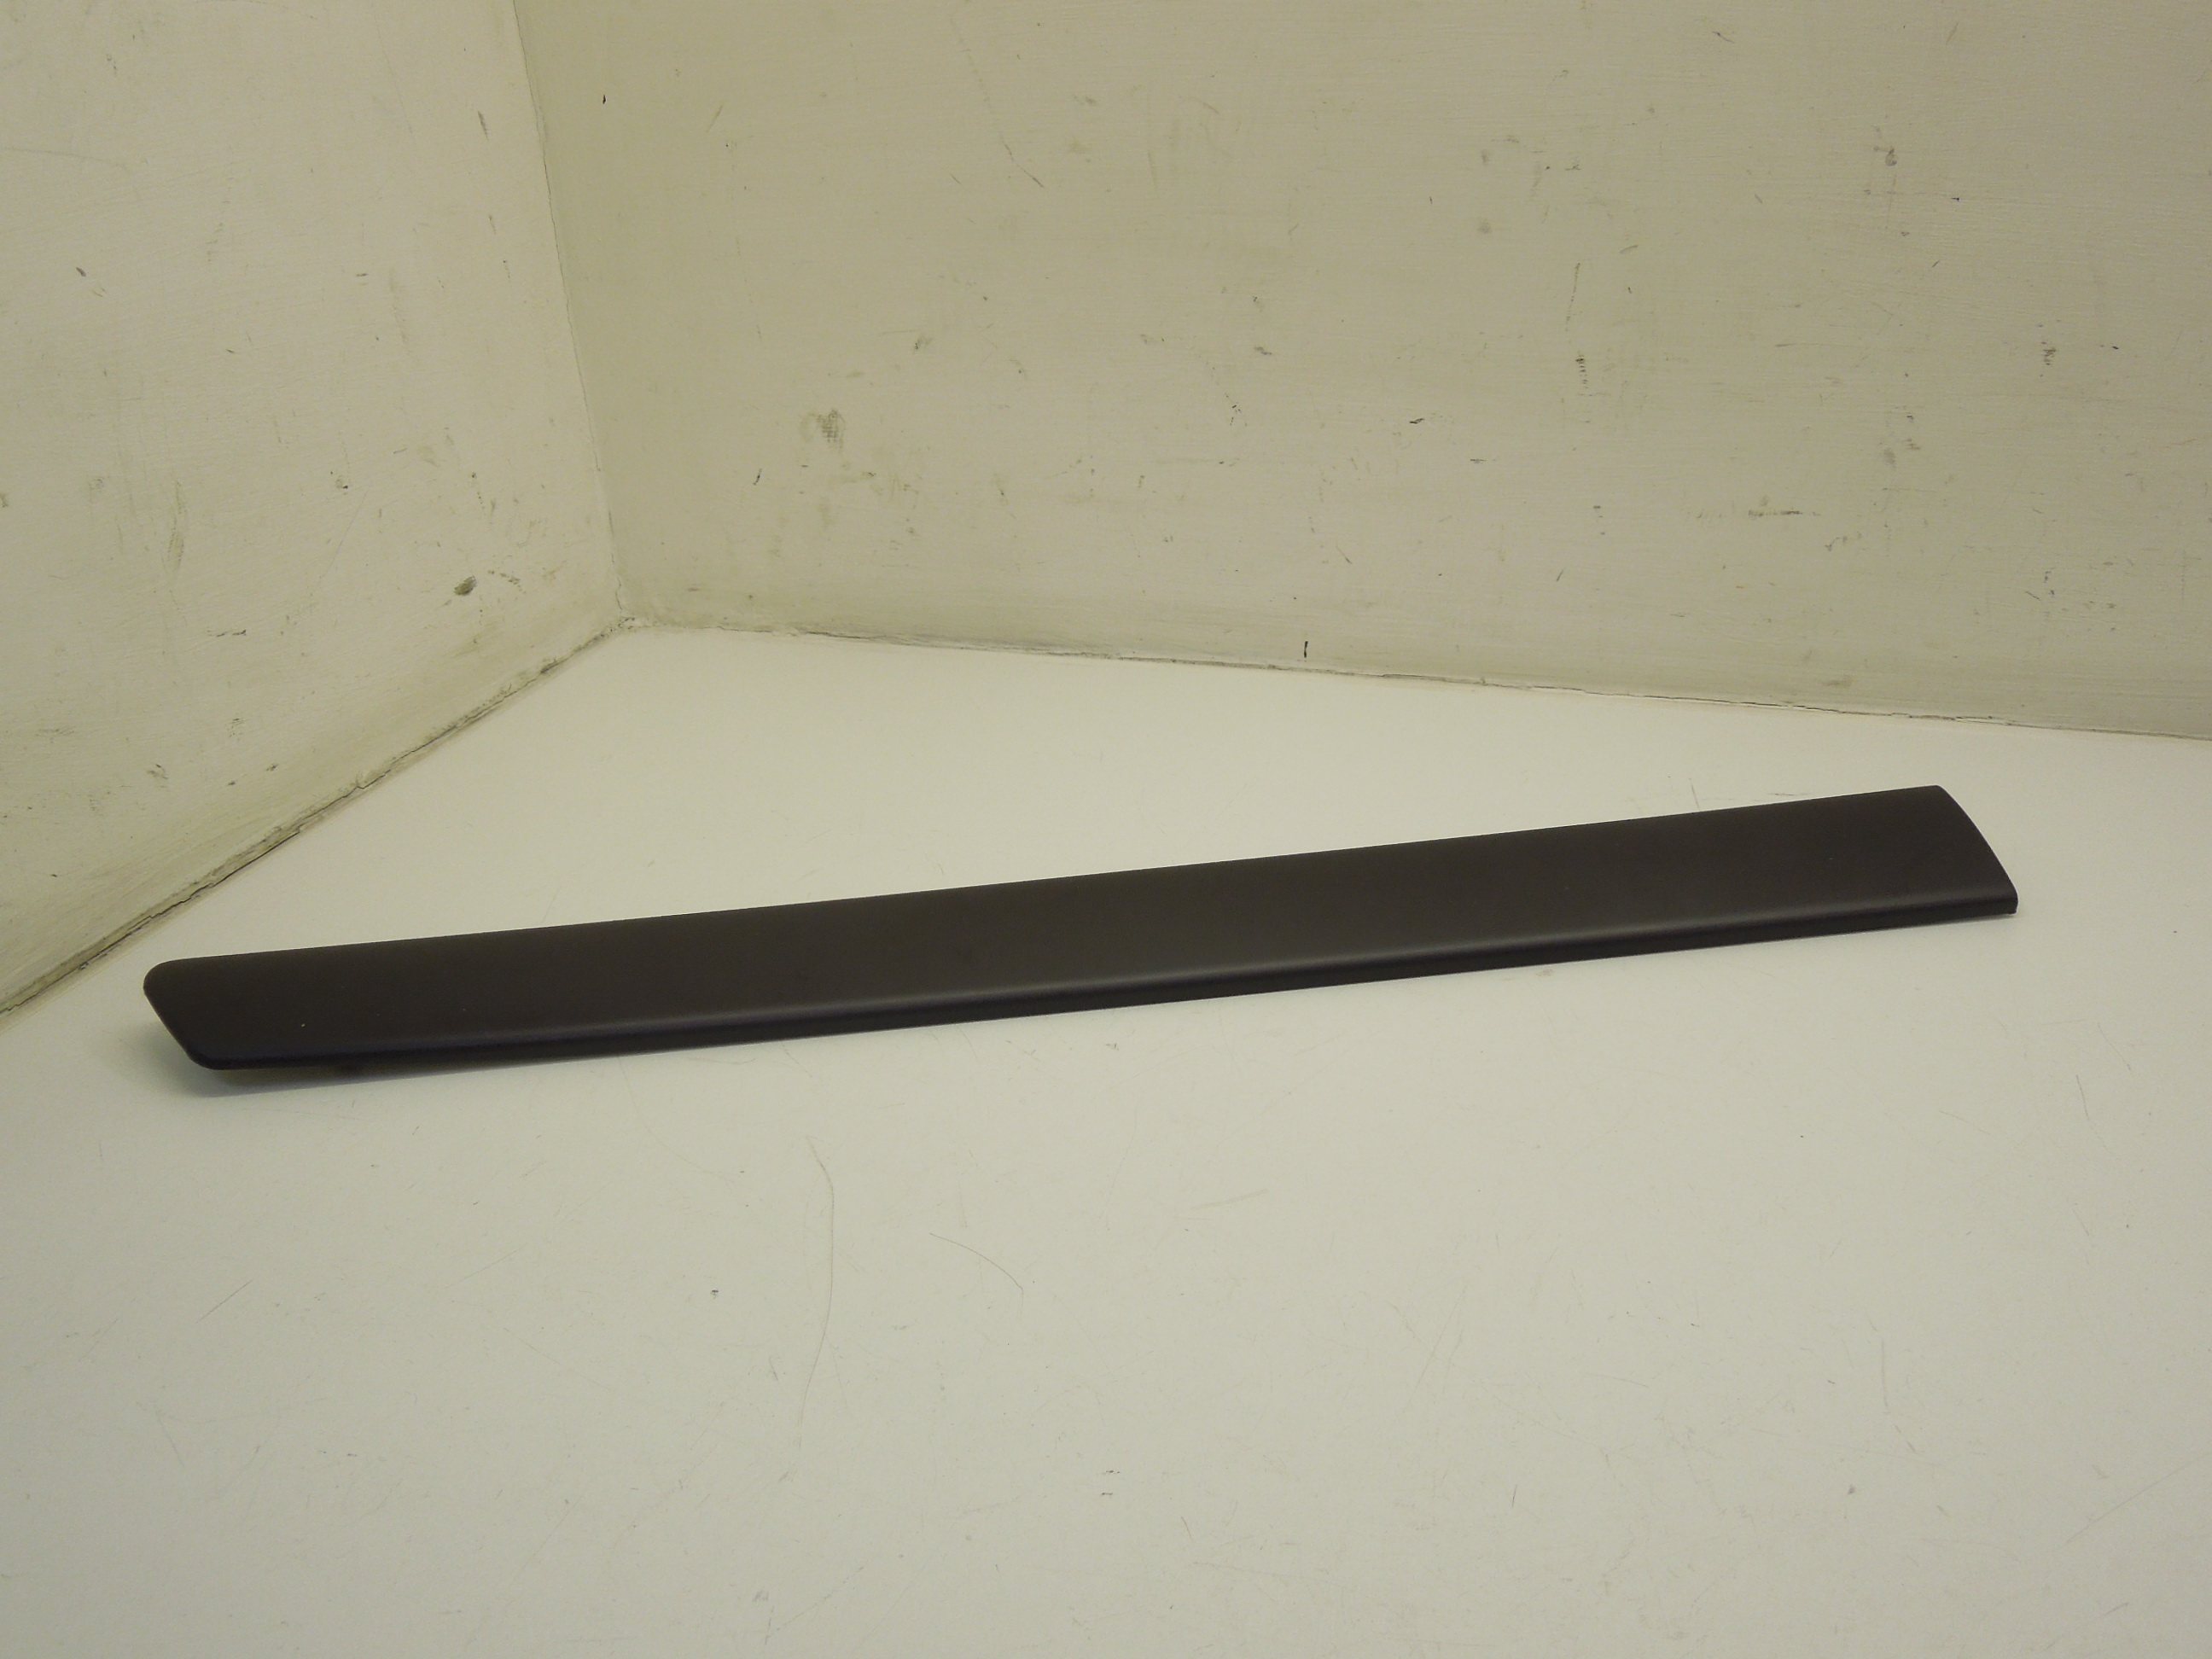 Audi A6 C5 Rear NS Left Upper Door Trim Soul Black 4B0867419